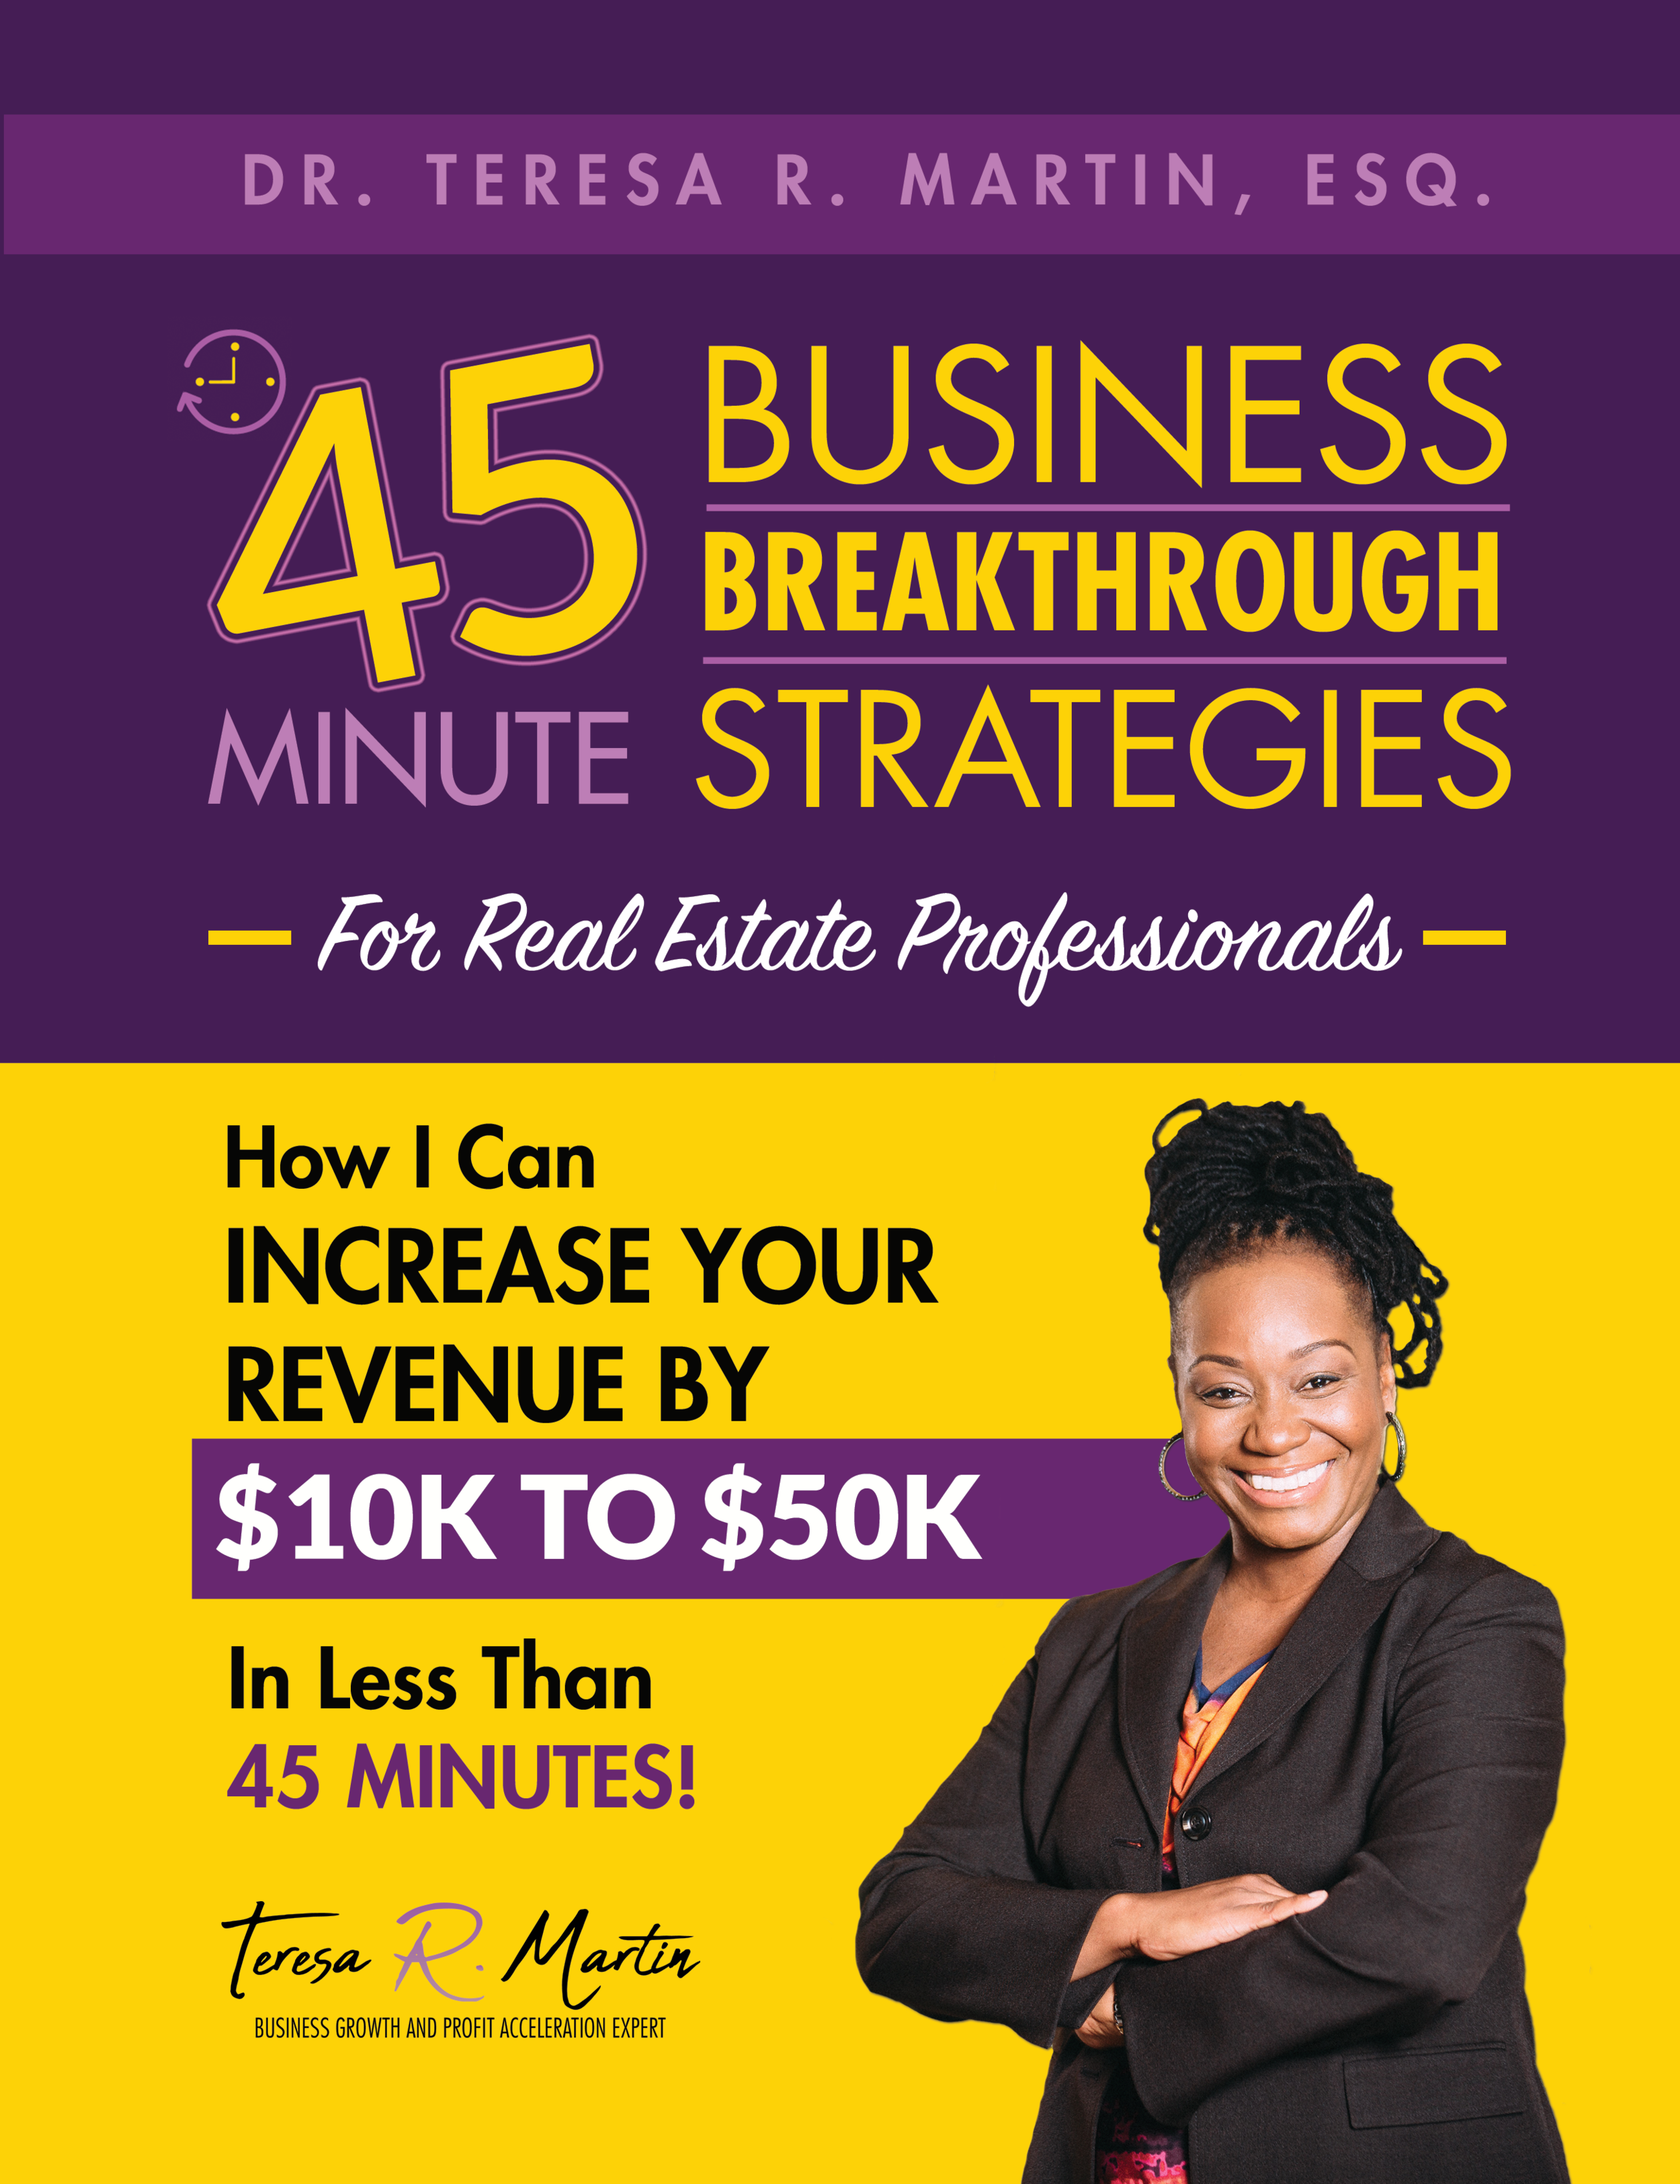 Business Breakthrough Strategies for Real Estate